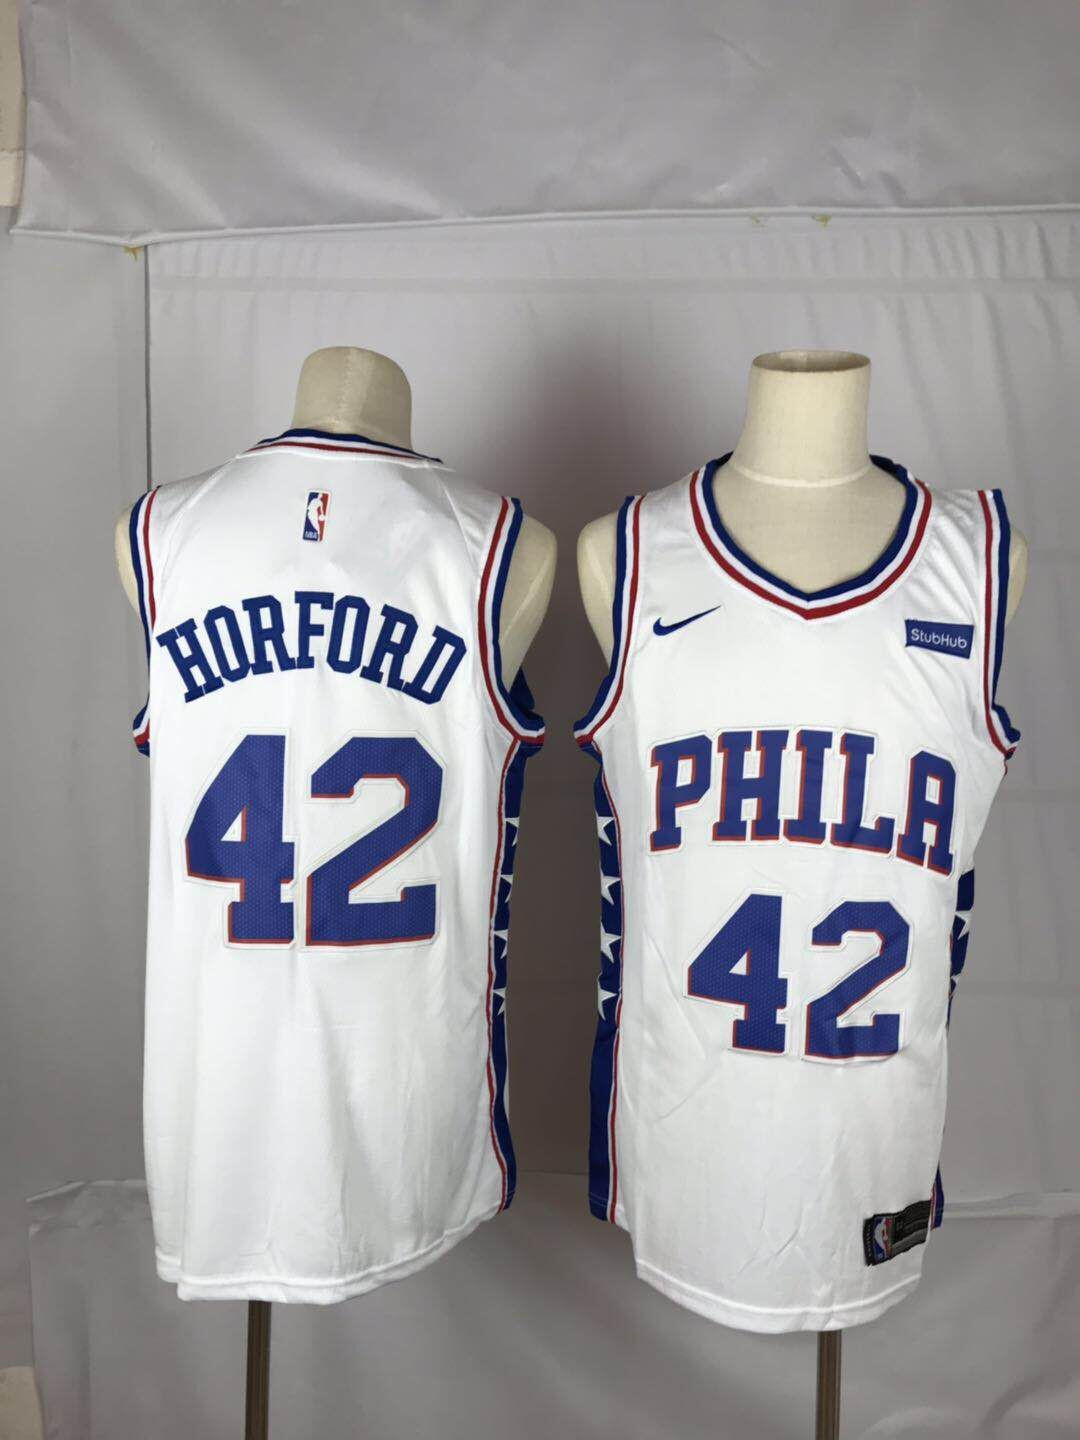 76ers 42 Al Horford White Nike Throwback Swingman Jersey